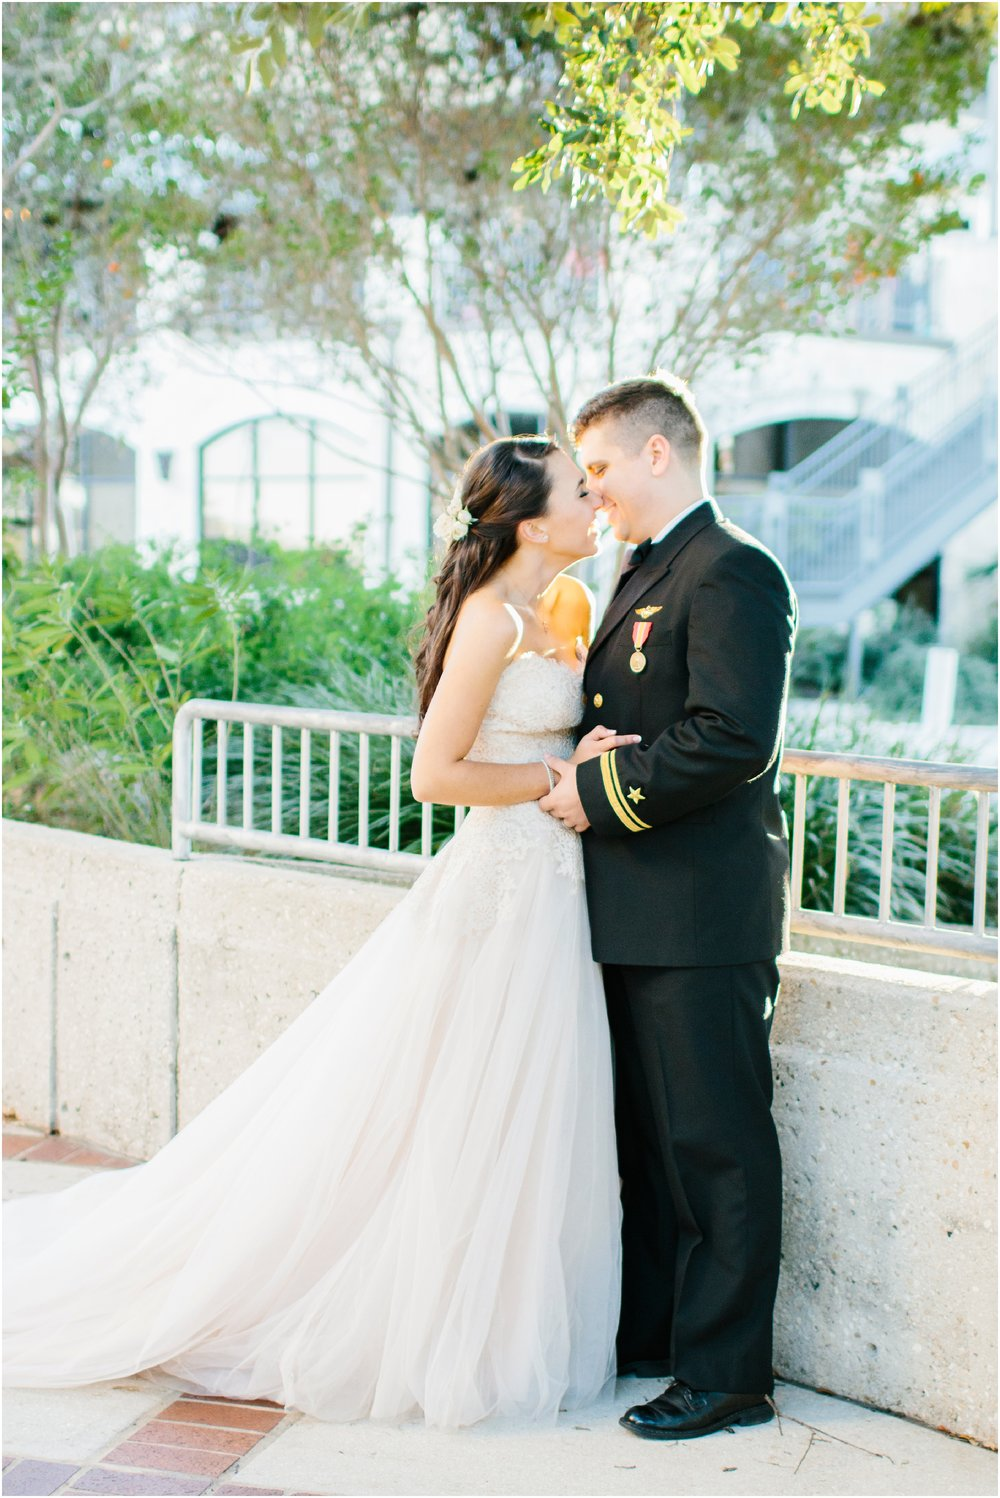 San_Antonio_Cana_Ballroom_Wedding_0408.jpg